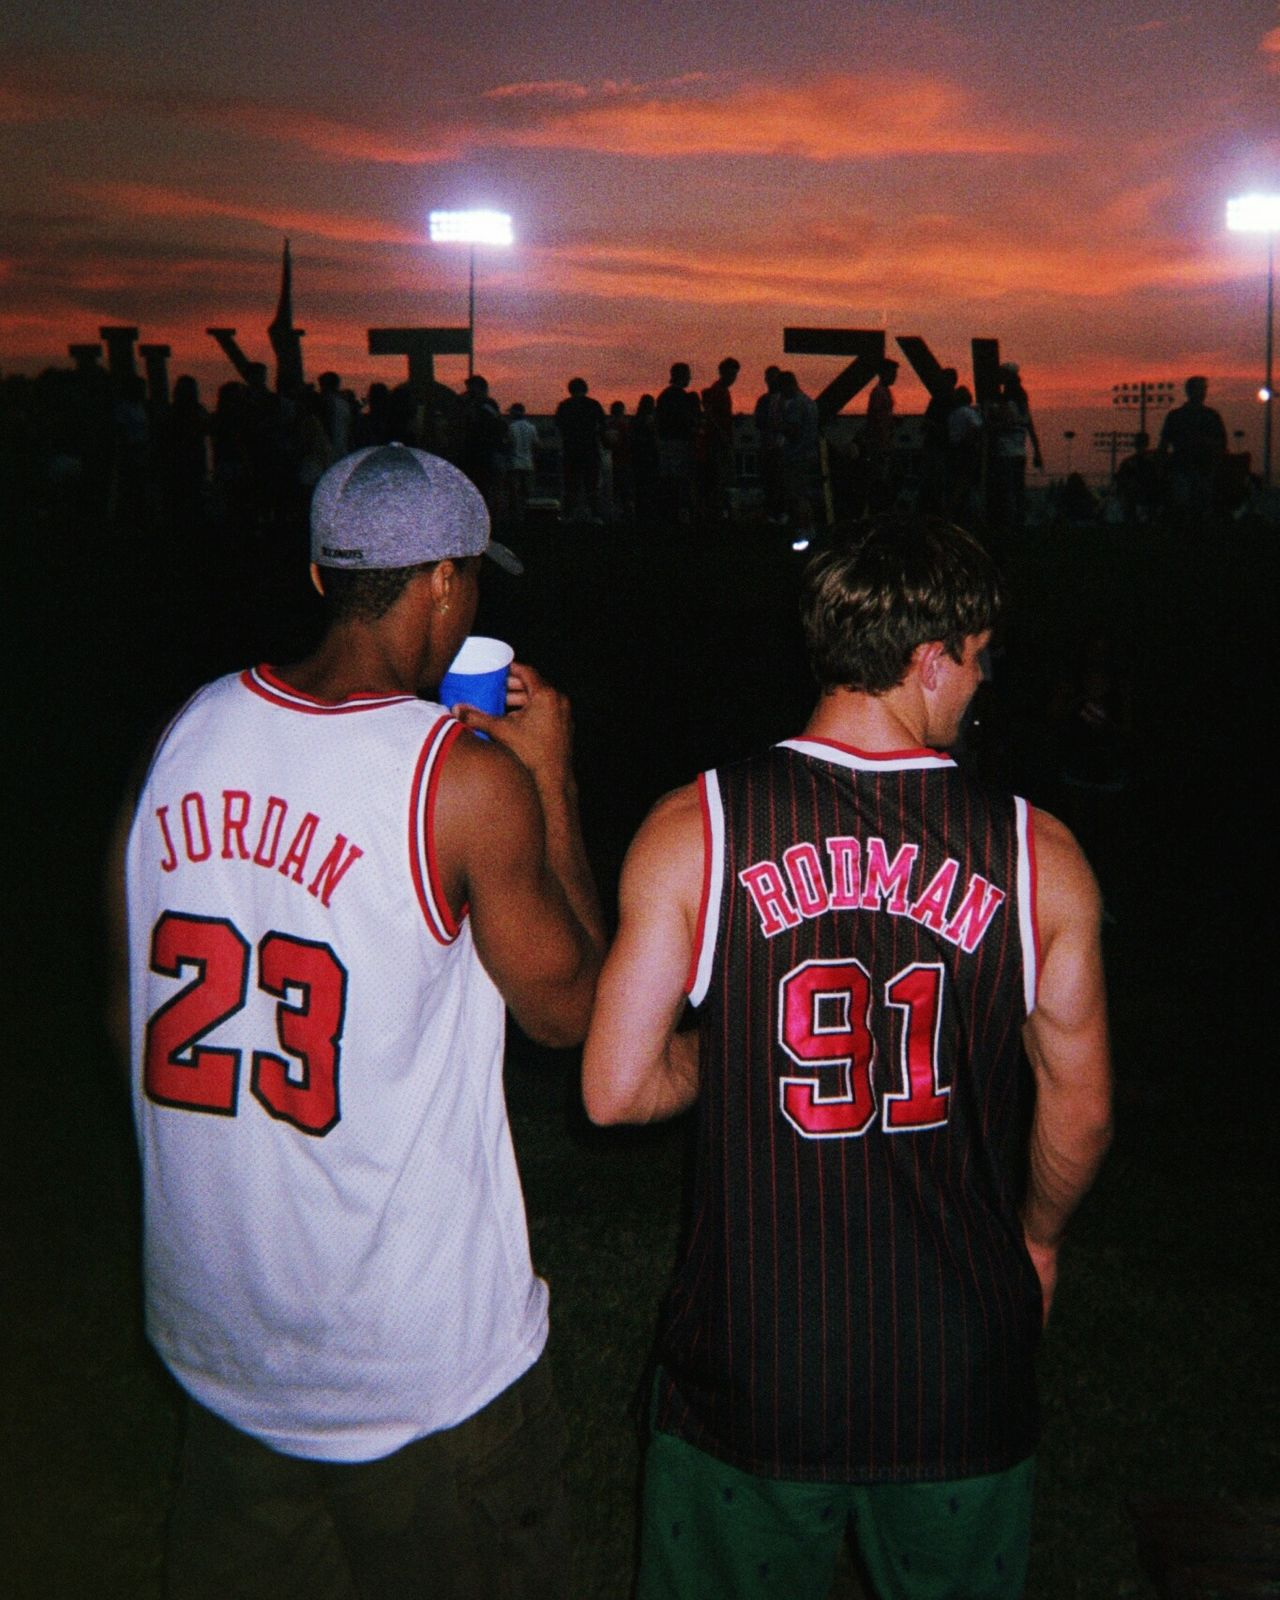 23x91 Chicagobulls Chicago Michaeljordan DennisRodman NBAbasketball NBA Champions at SIUE First Eyeem Photo TwentySomething Snapshots Of Life